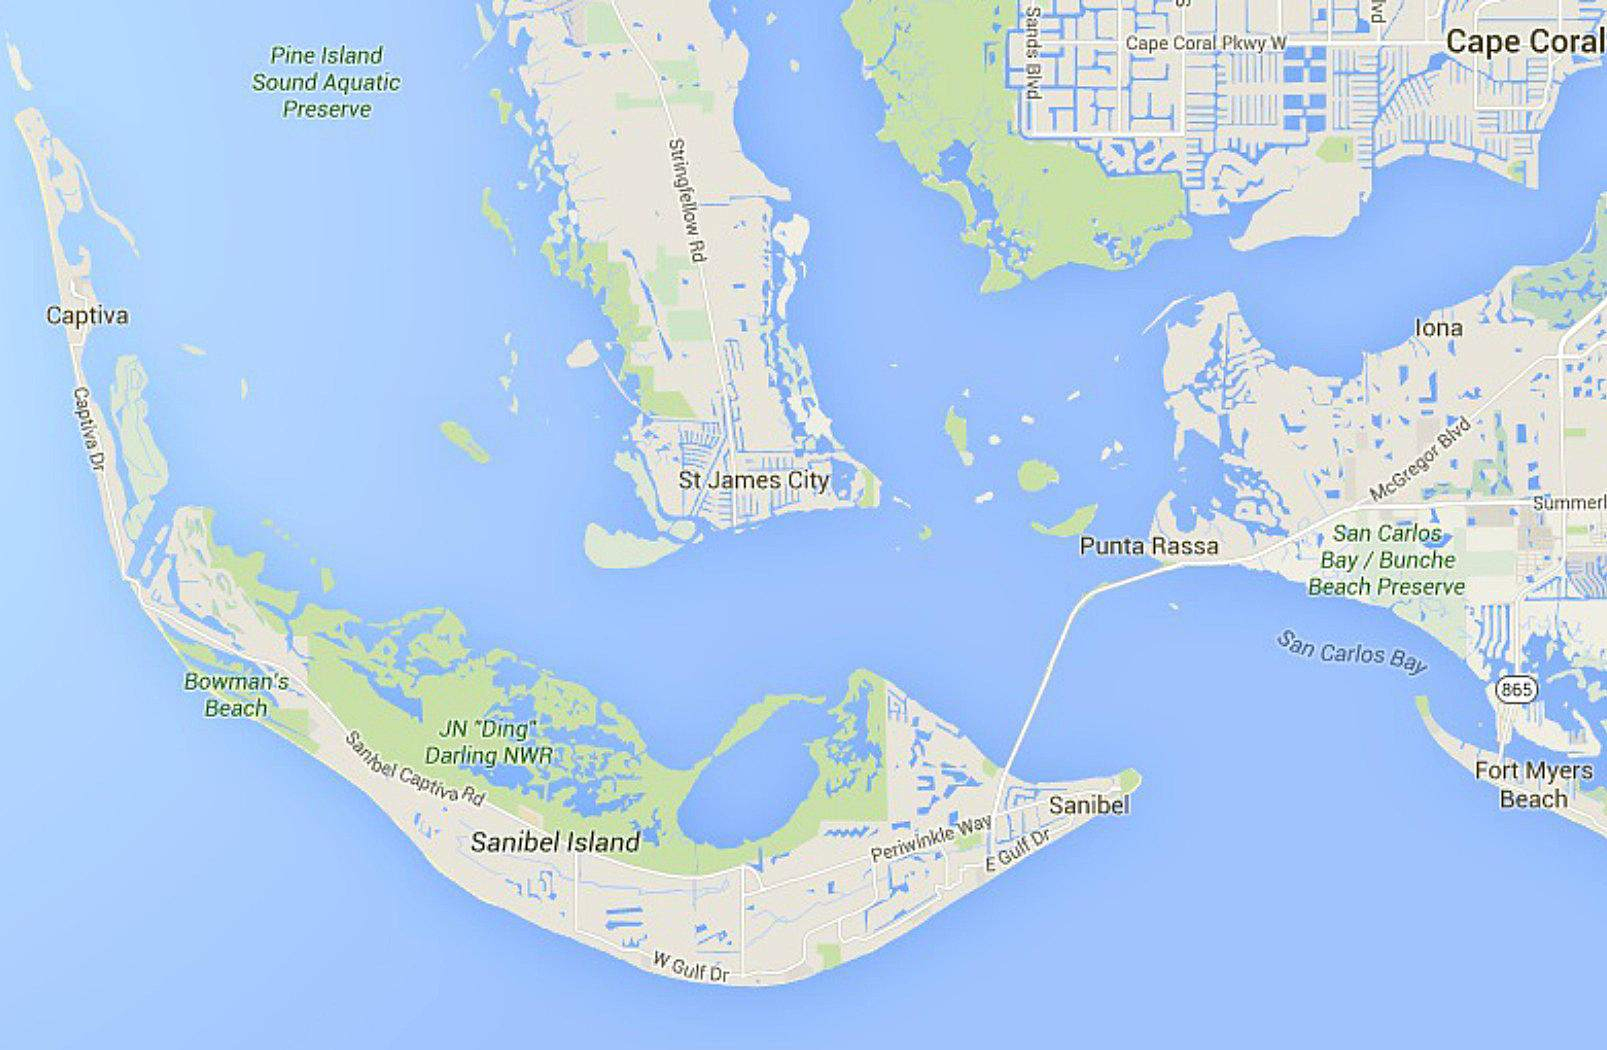 Maps Of Florida: Orlando, Tampa, Miami, Keys, And More - Best Beaches Gulf Coast Florida Map